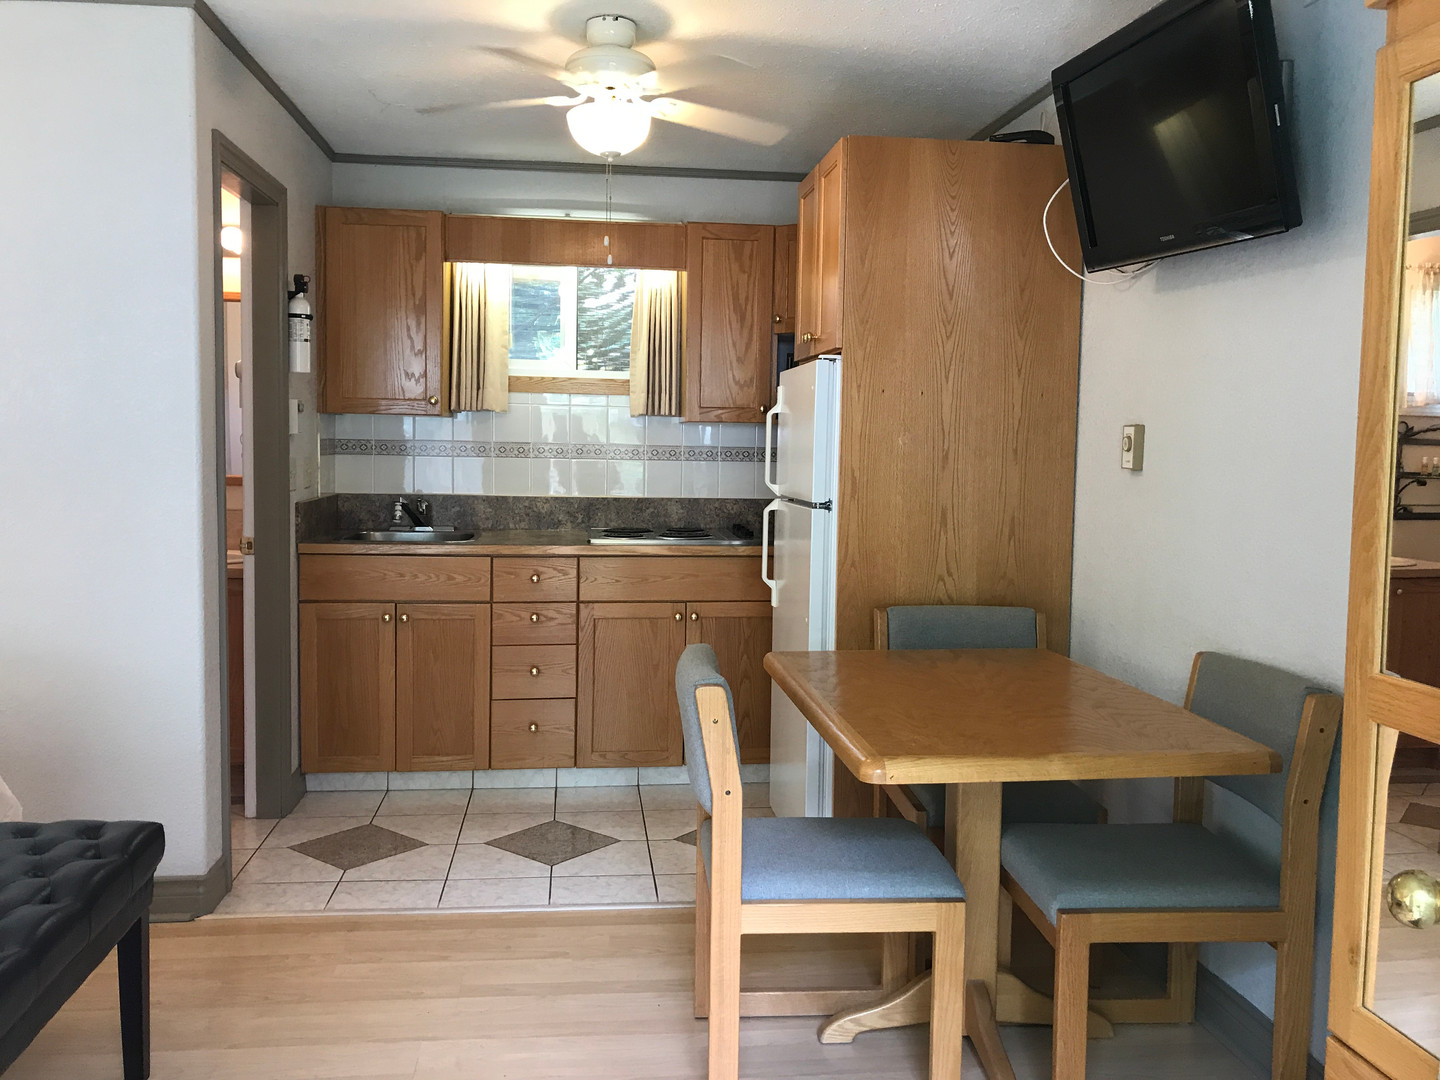 Kitchenettes in most suites